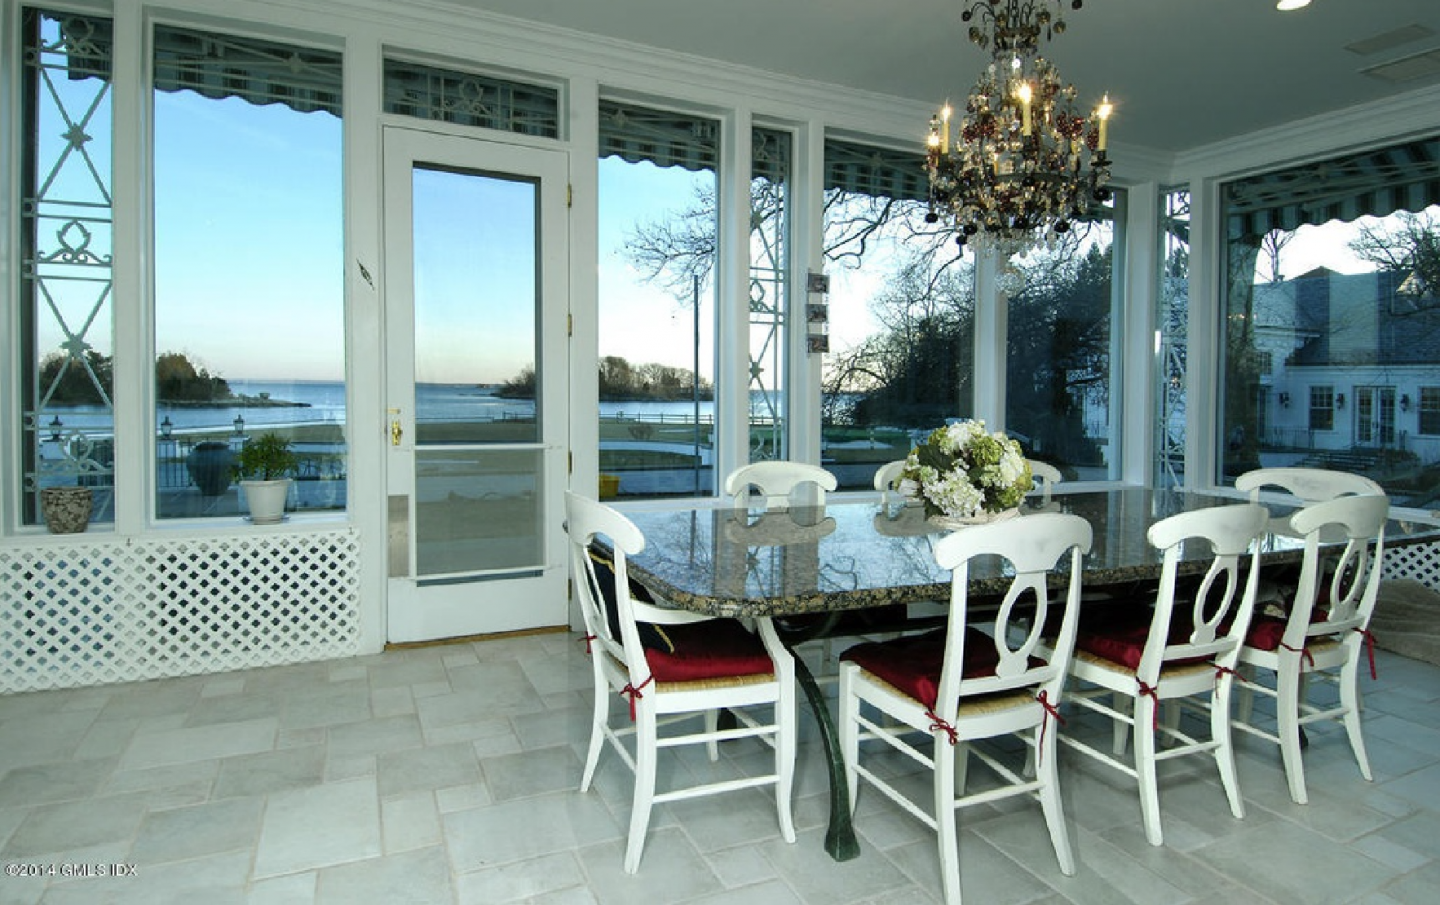 Dining area which looks out onto the pool and Long Island Sound